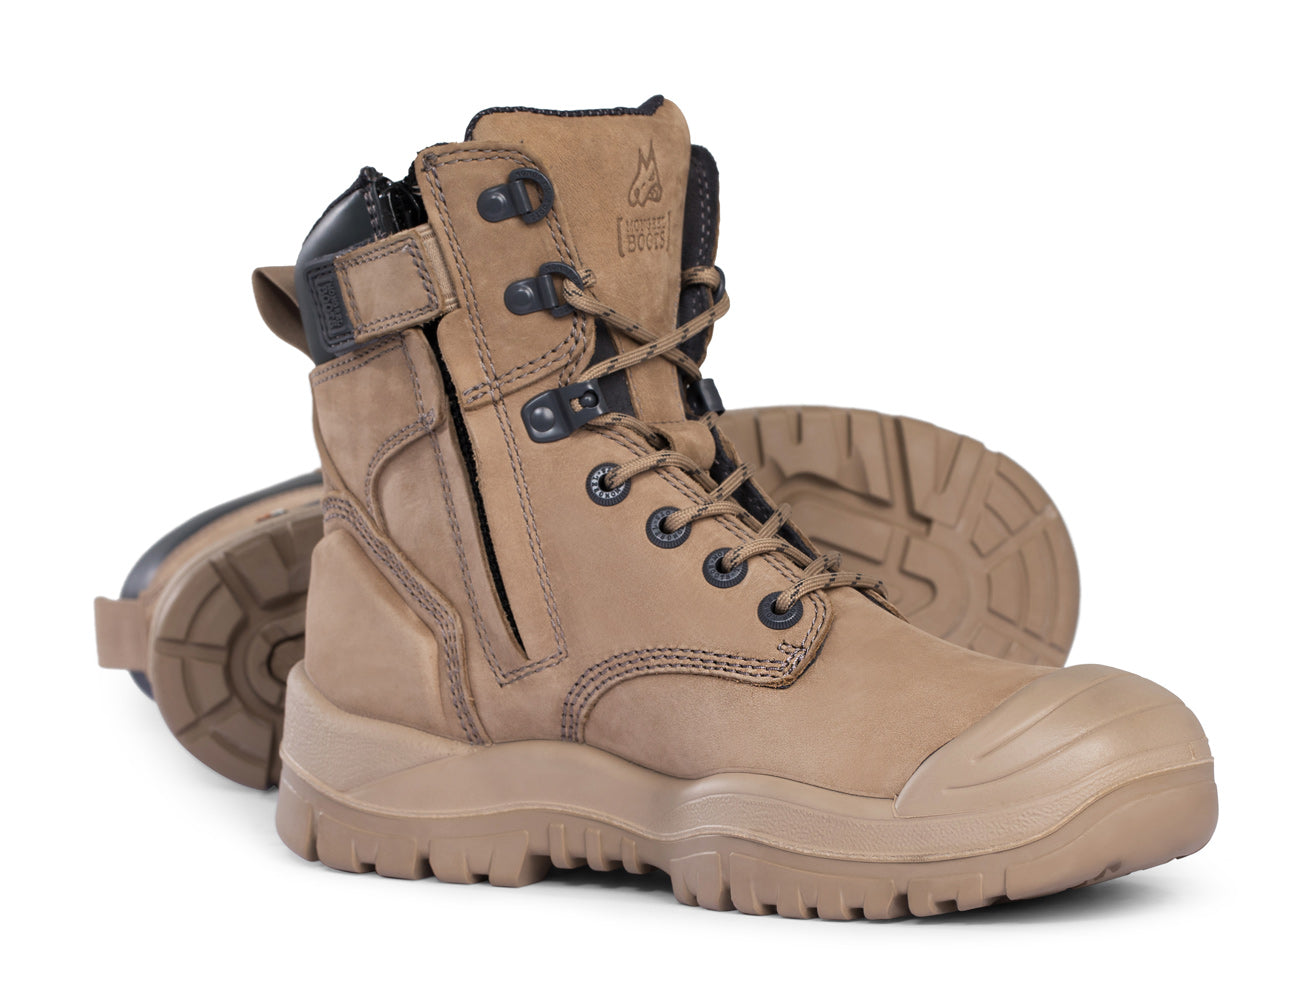 Mongrel High Leg Zip-Sider Safety Boots with Scuff Cap and Rubber Outsole - 561050